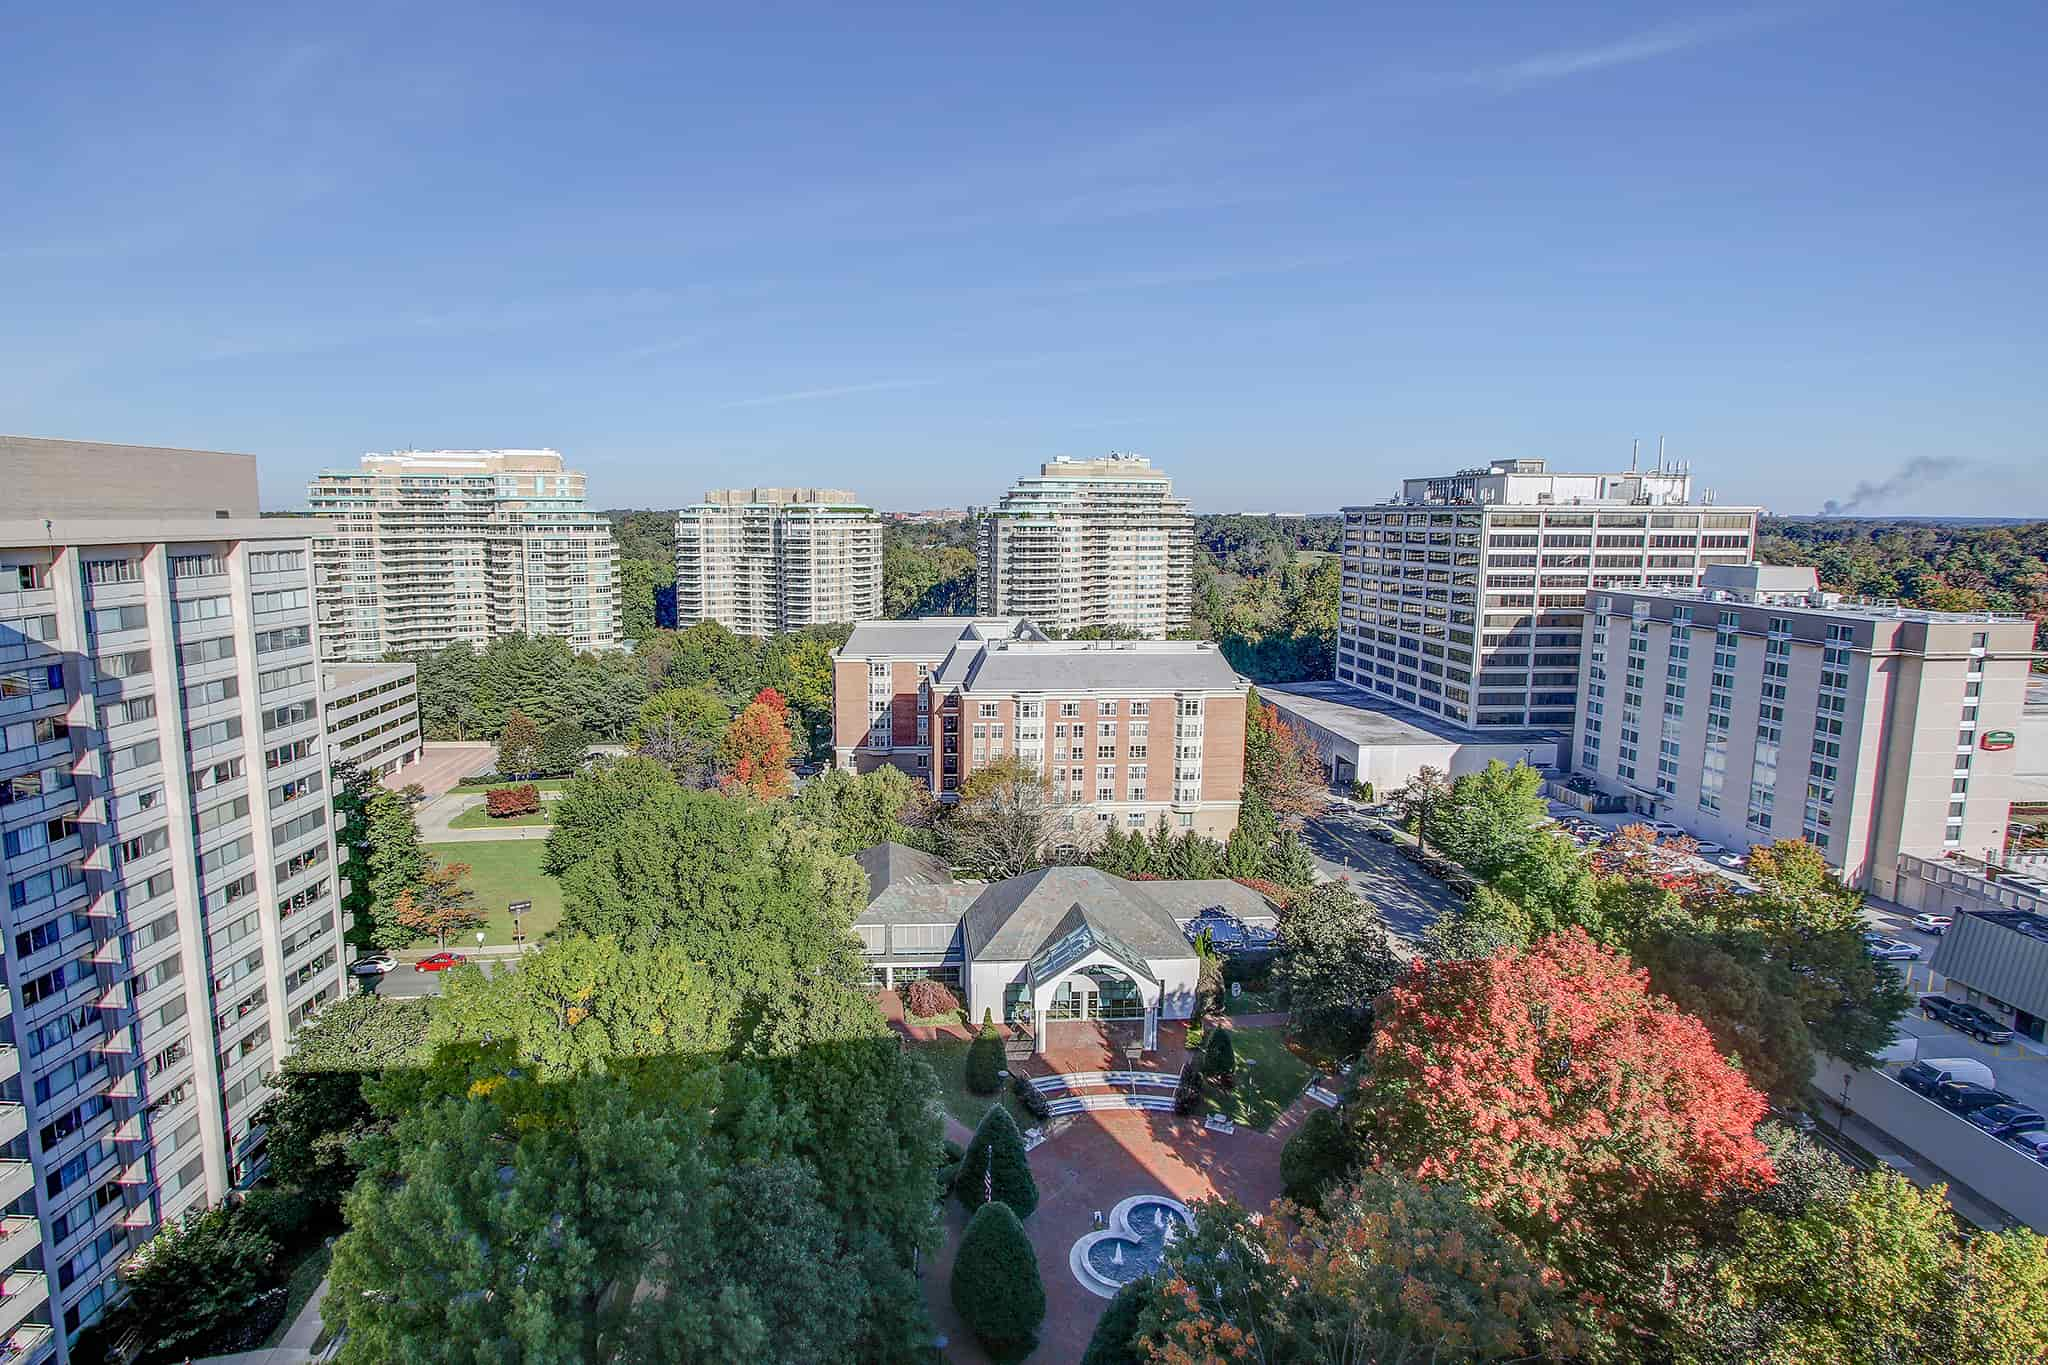 Rooftop view of Chevy Chase, MD